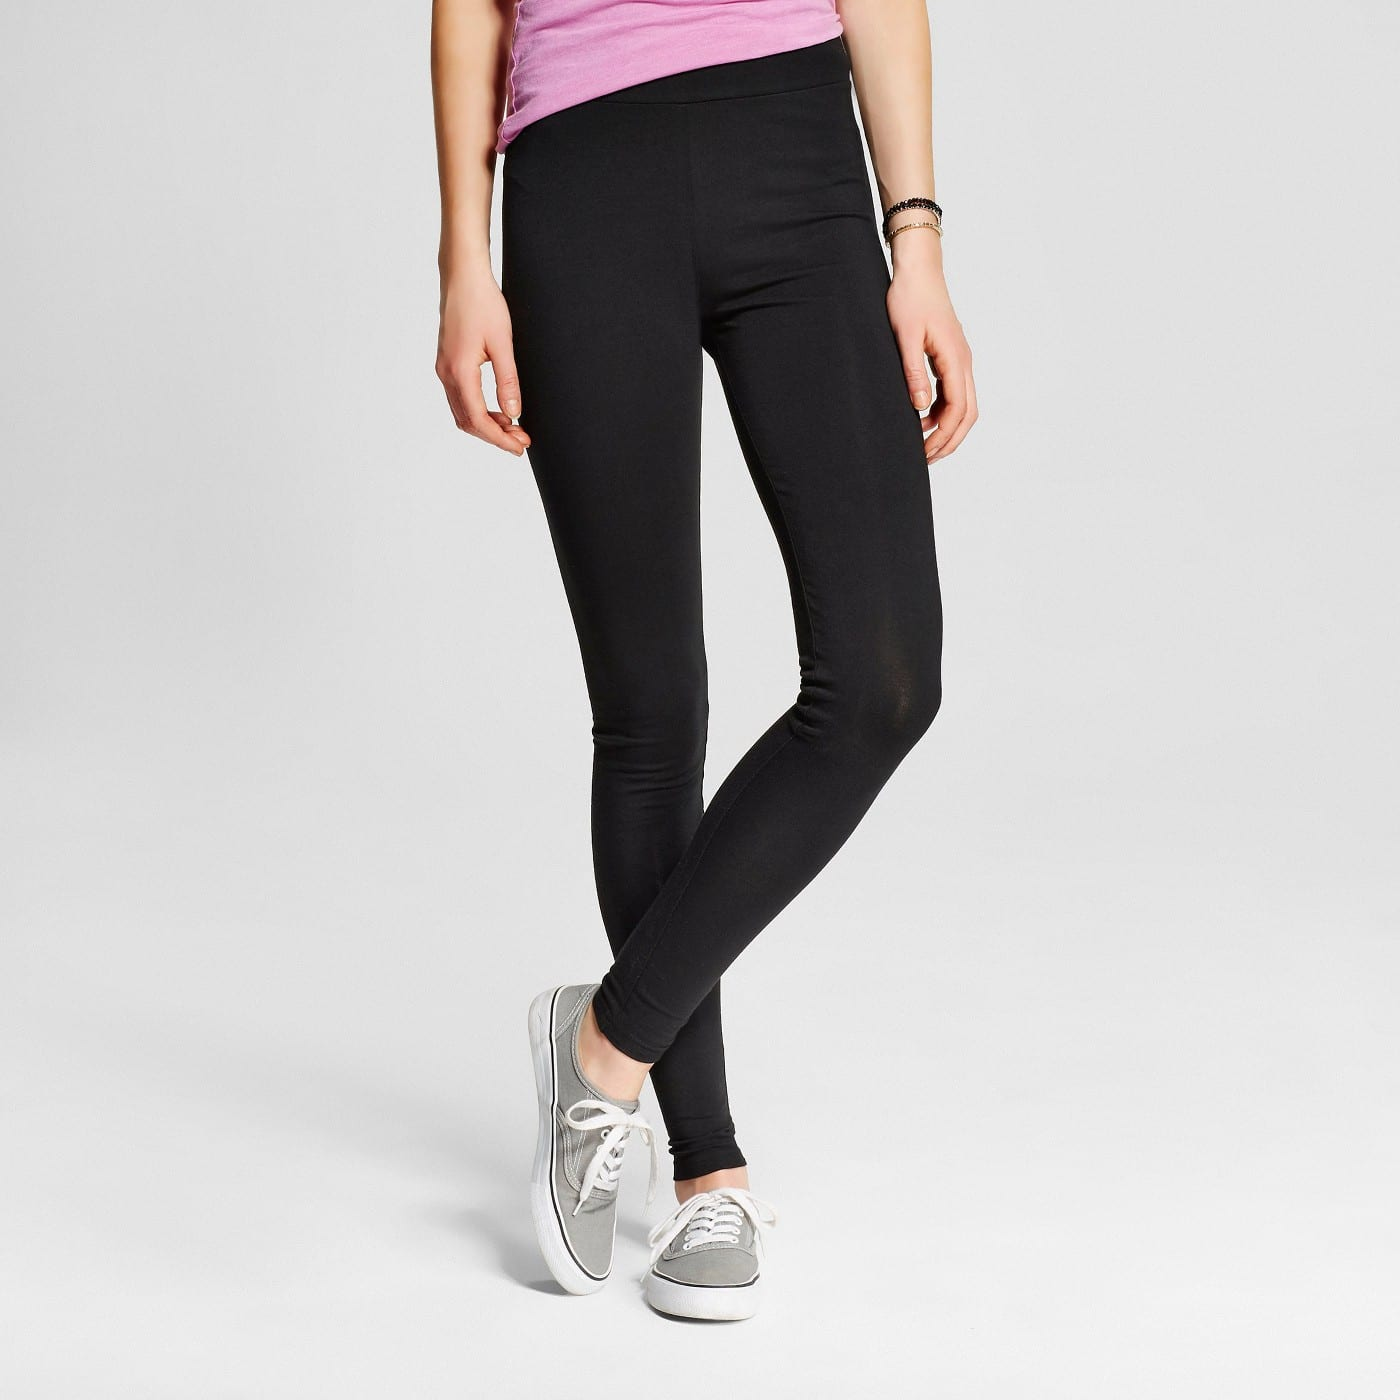 419f3ae3386dbc Target: Women's Leggings - Mossimo Supply Co. (Black) $3 - Page 2 ...